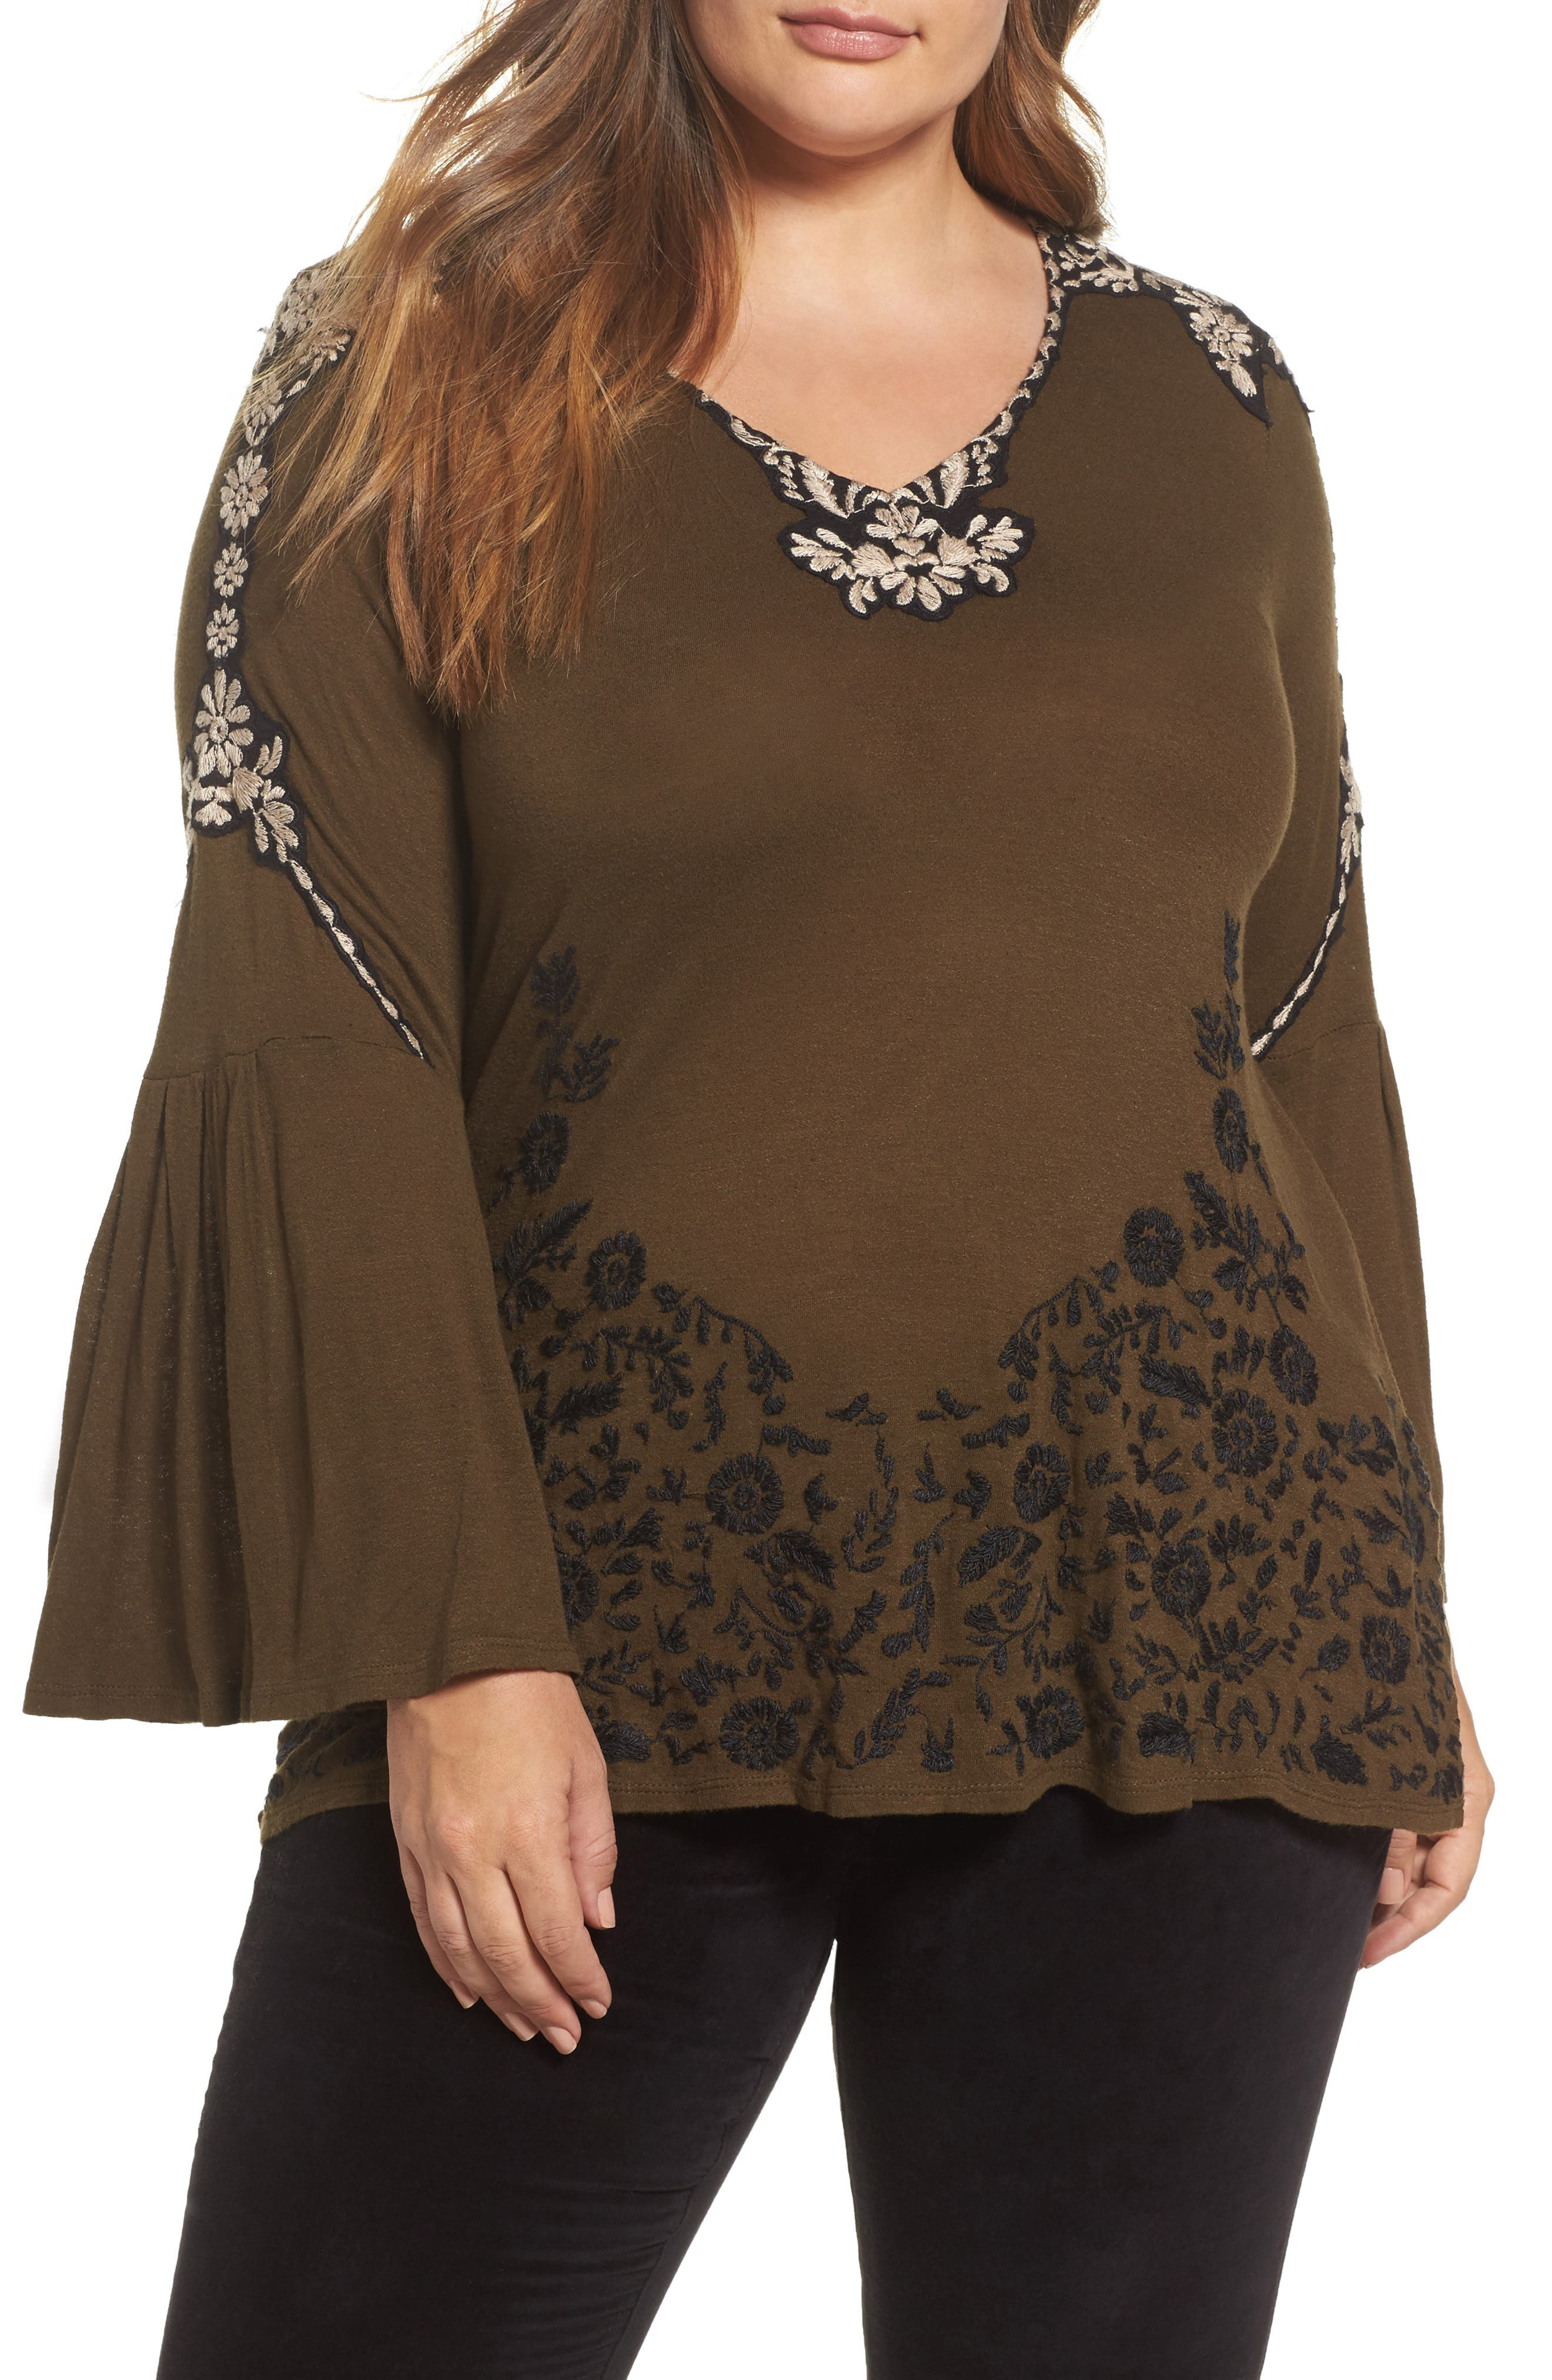 Alternate Image 1 Selected - Lucky Brand Embroidered Bell Sleeve Top (Plus Size)